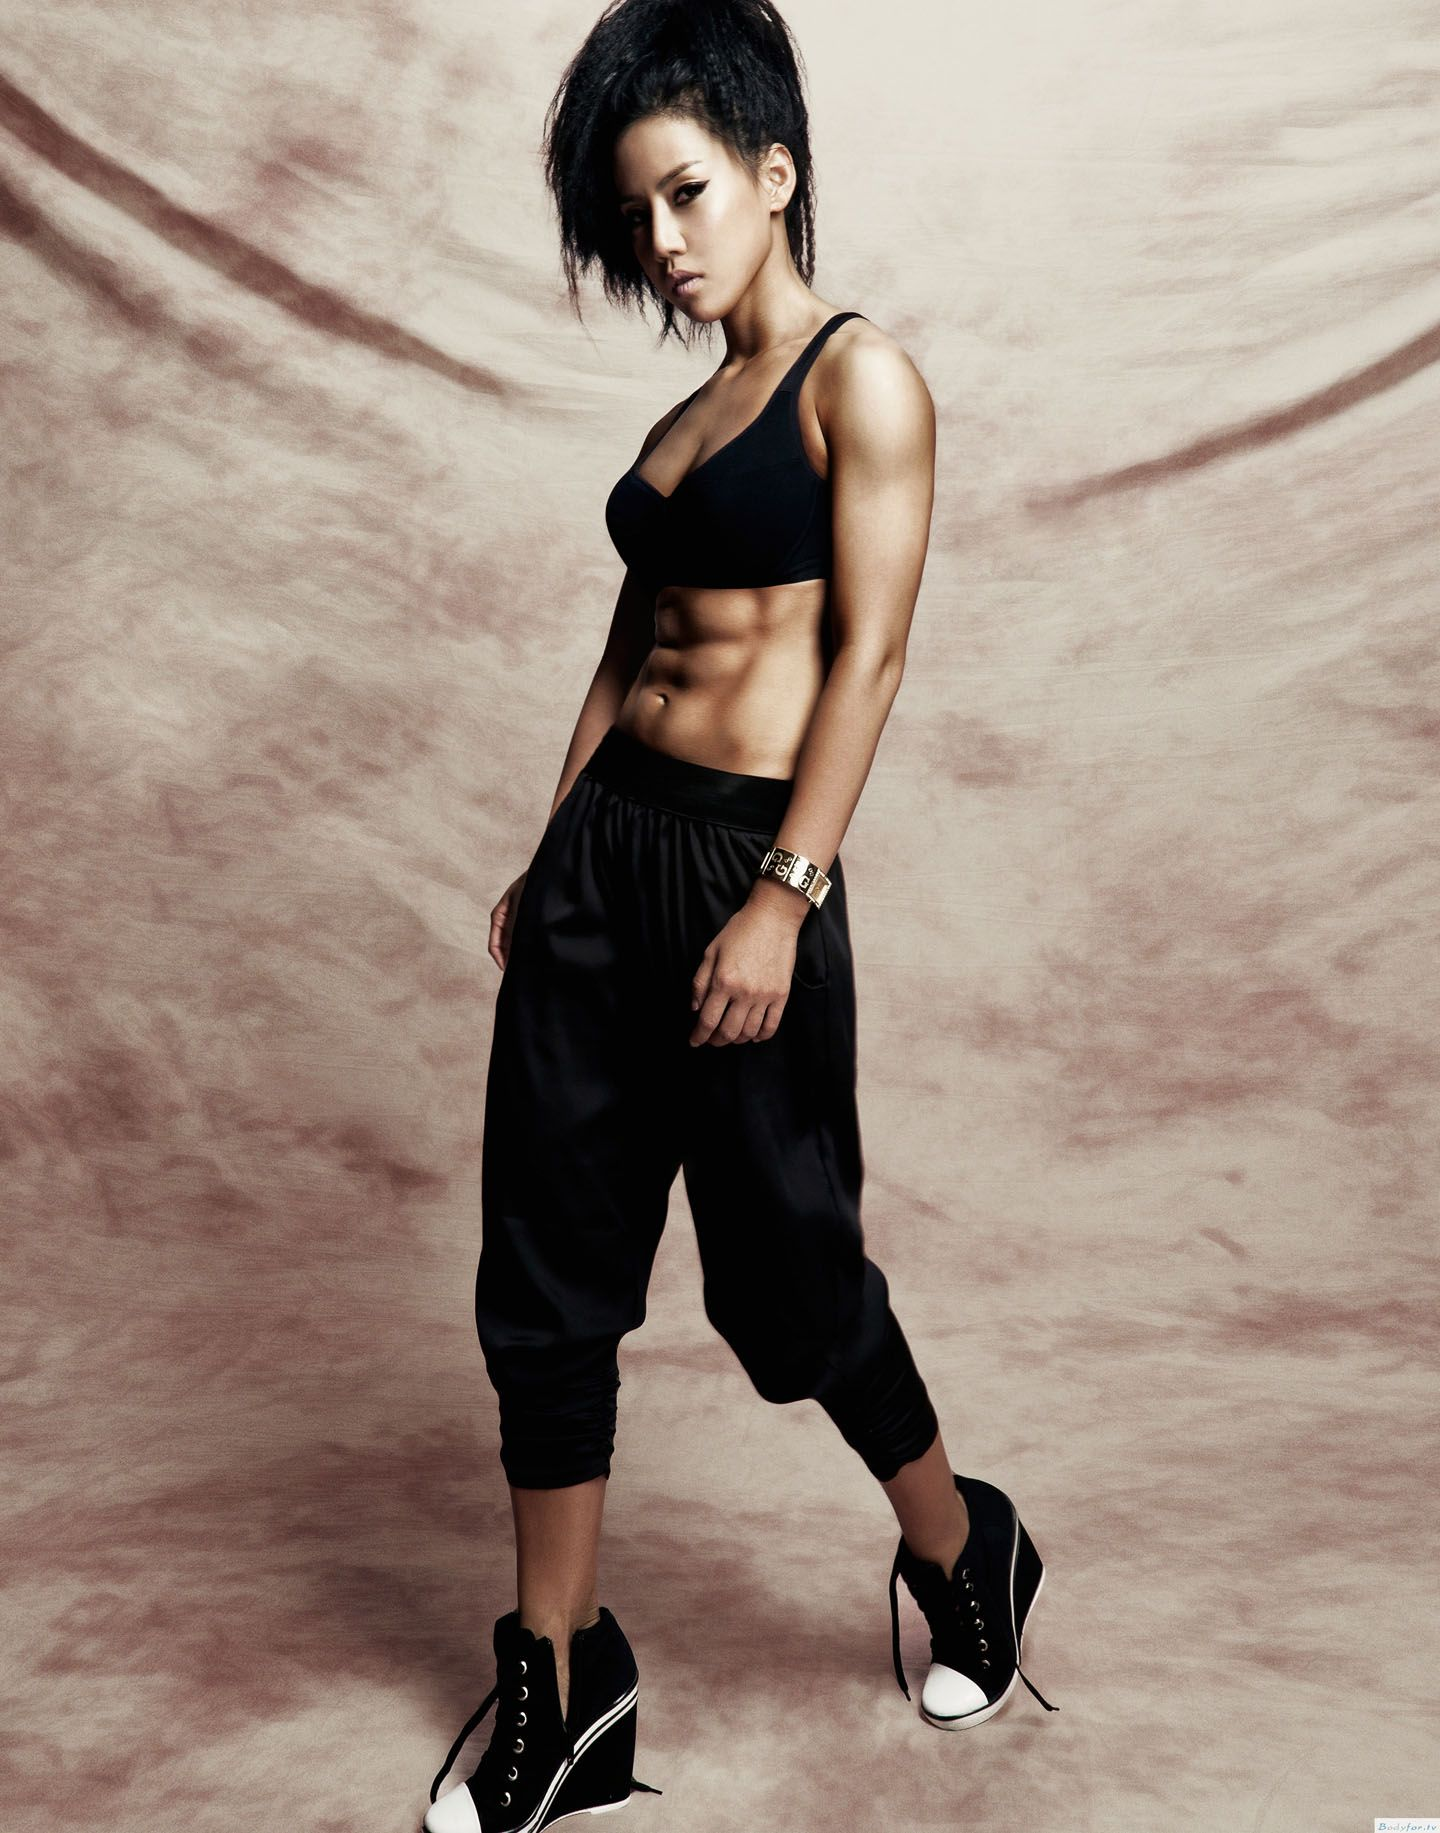 Strong asian woman posture standing and lifting up her arms and exercises muscle